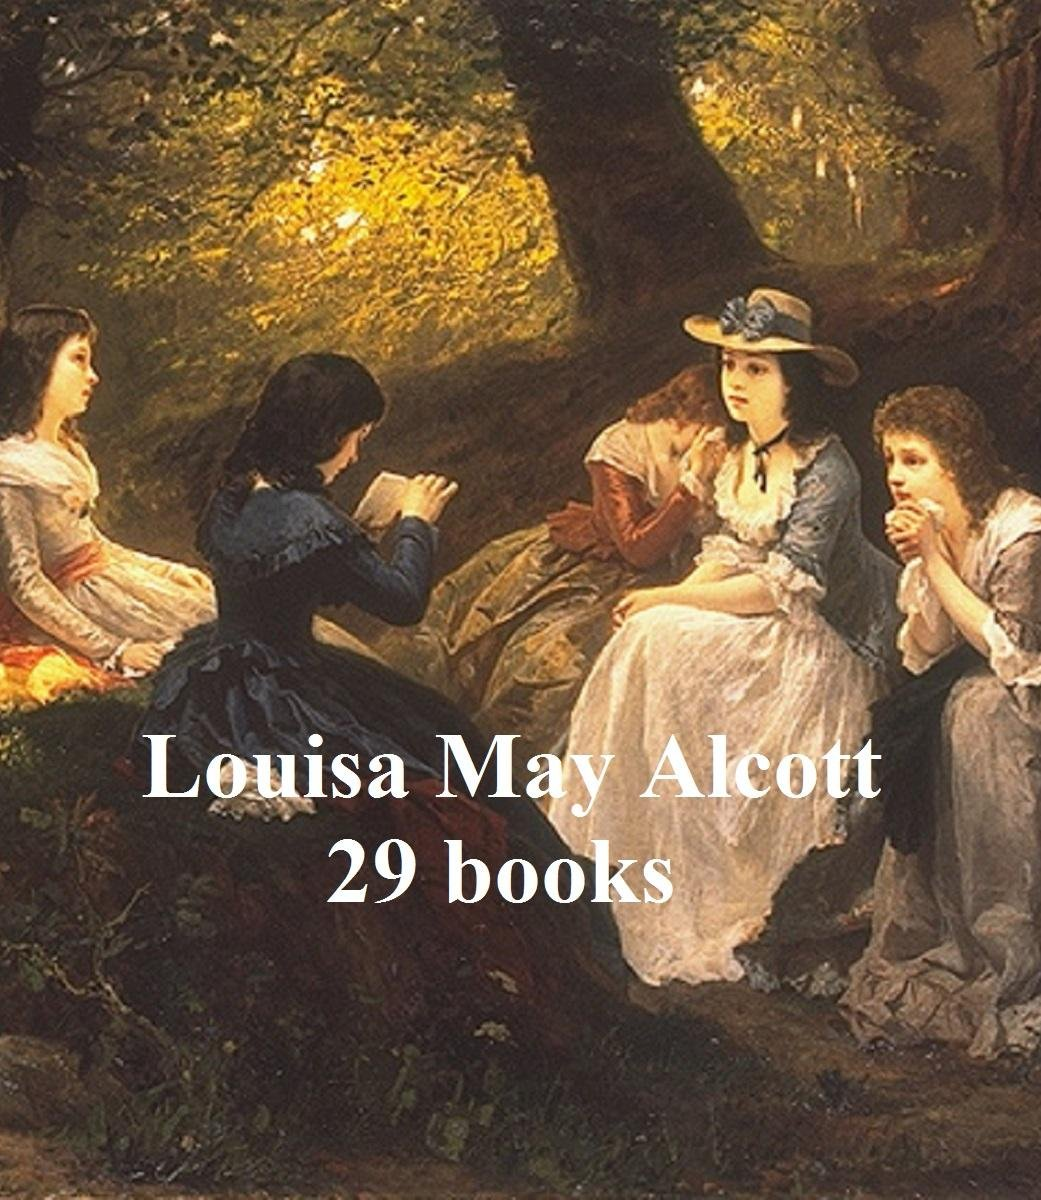 Louisa May Alcott's Works: 29 books